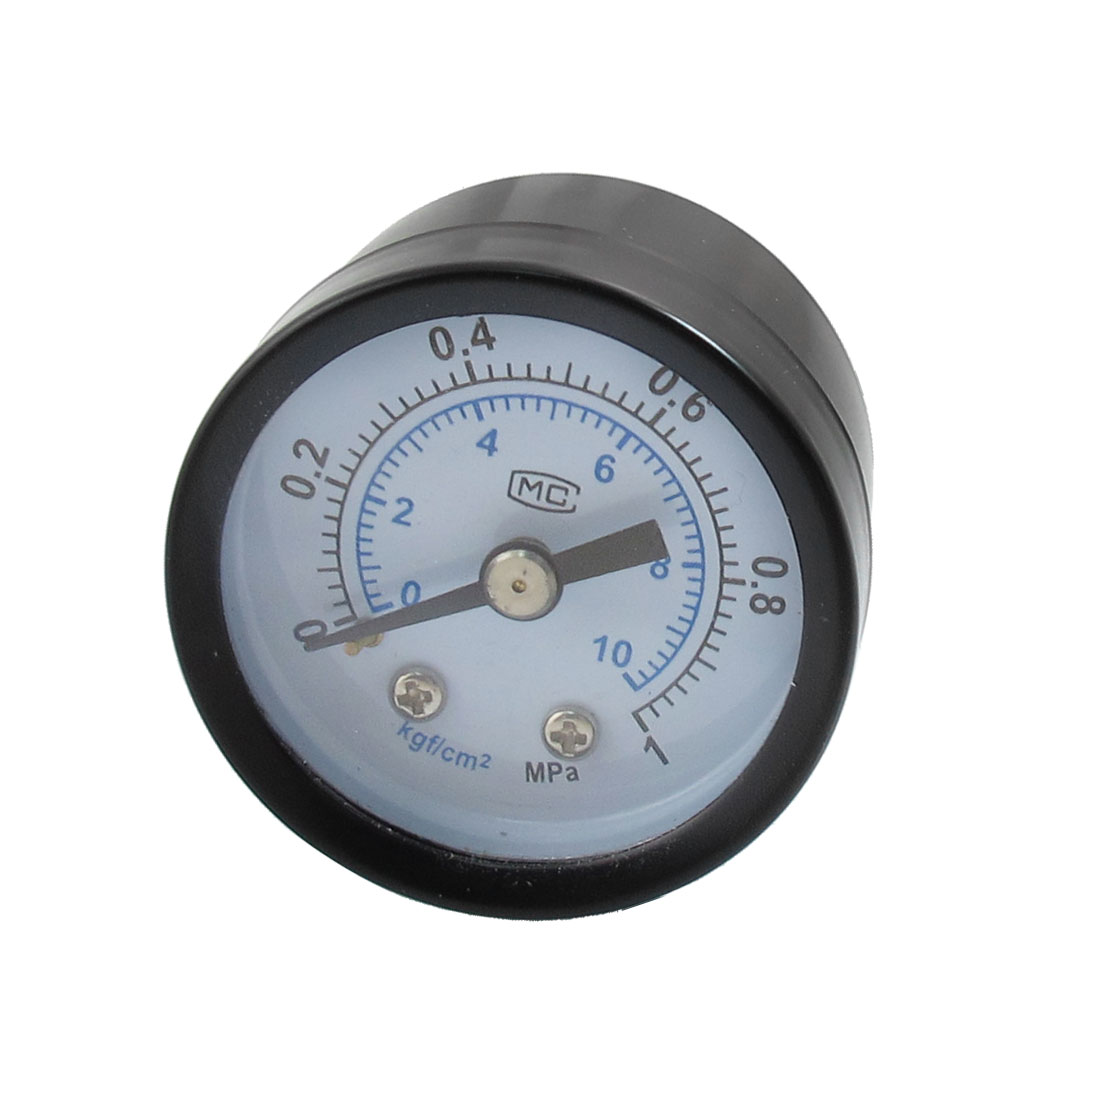 "0-1MPa 1/8"" Male Thread Black Metal Case Pneumatic Pressure Gauge"